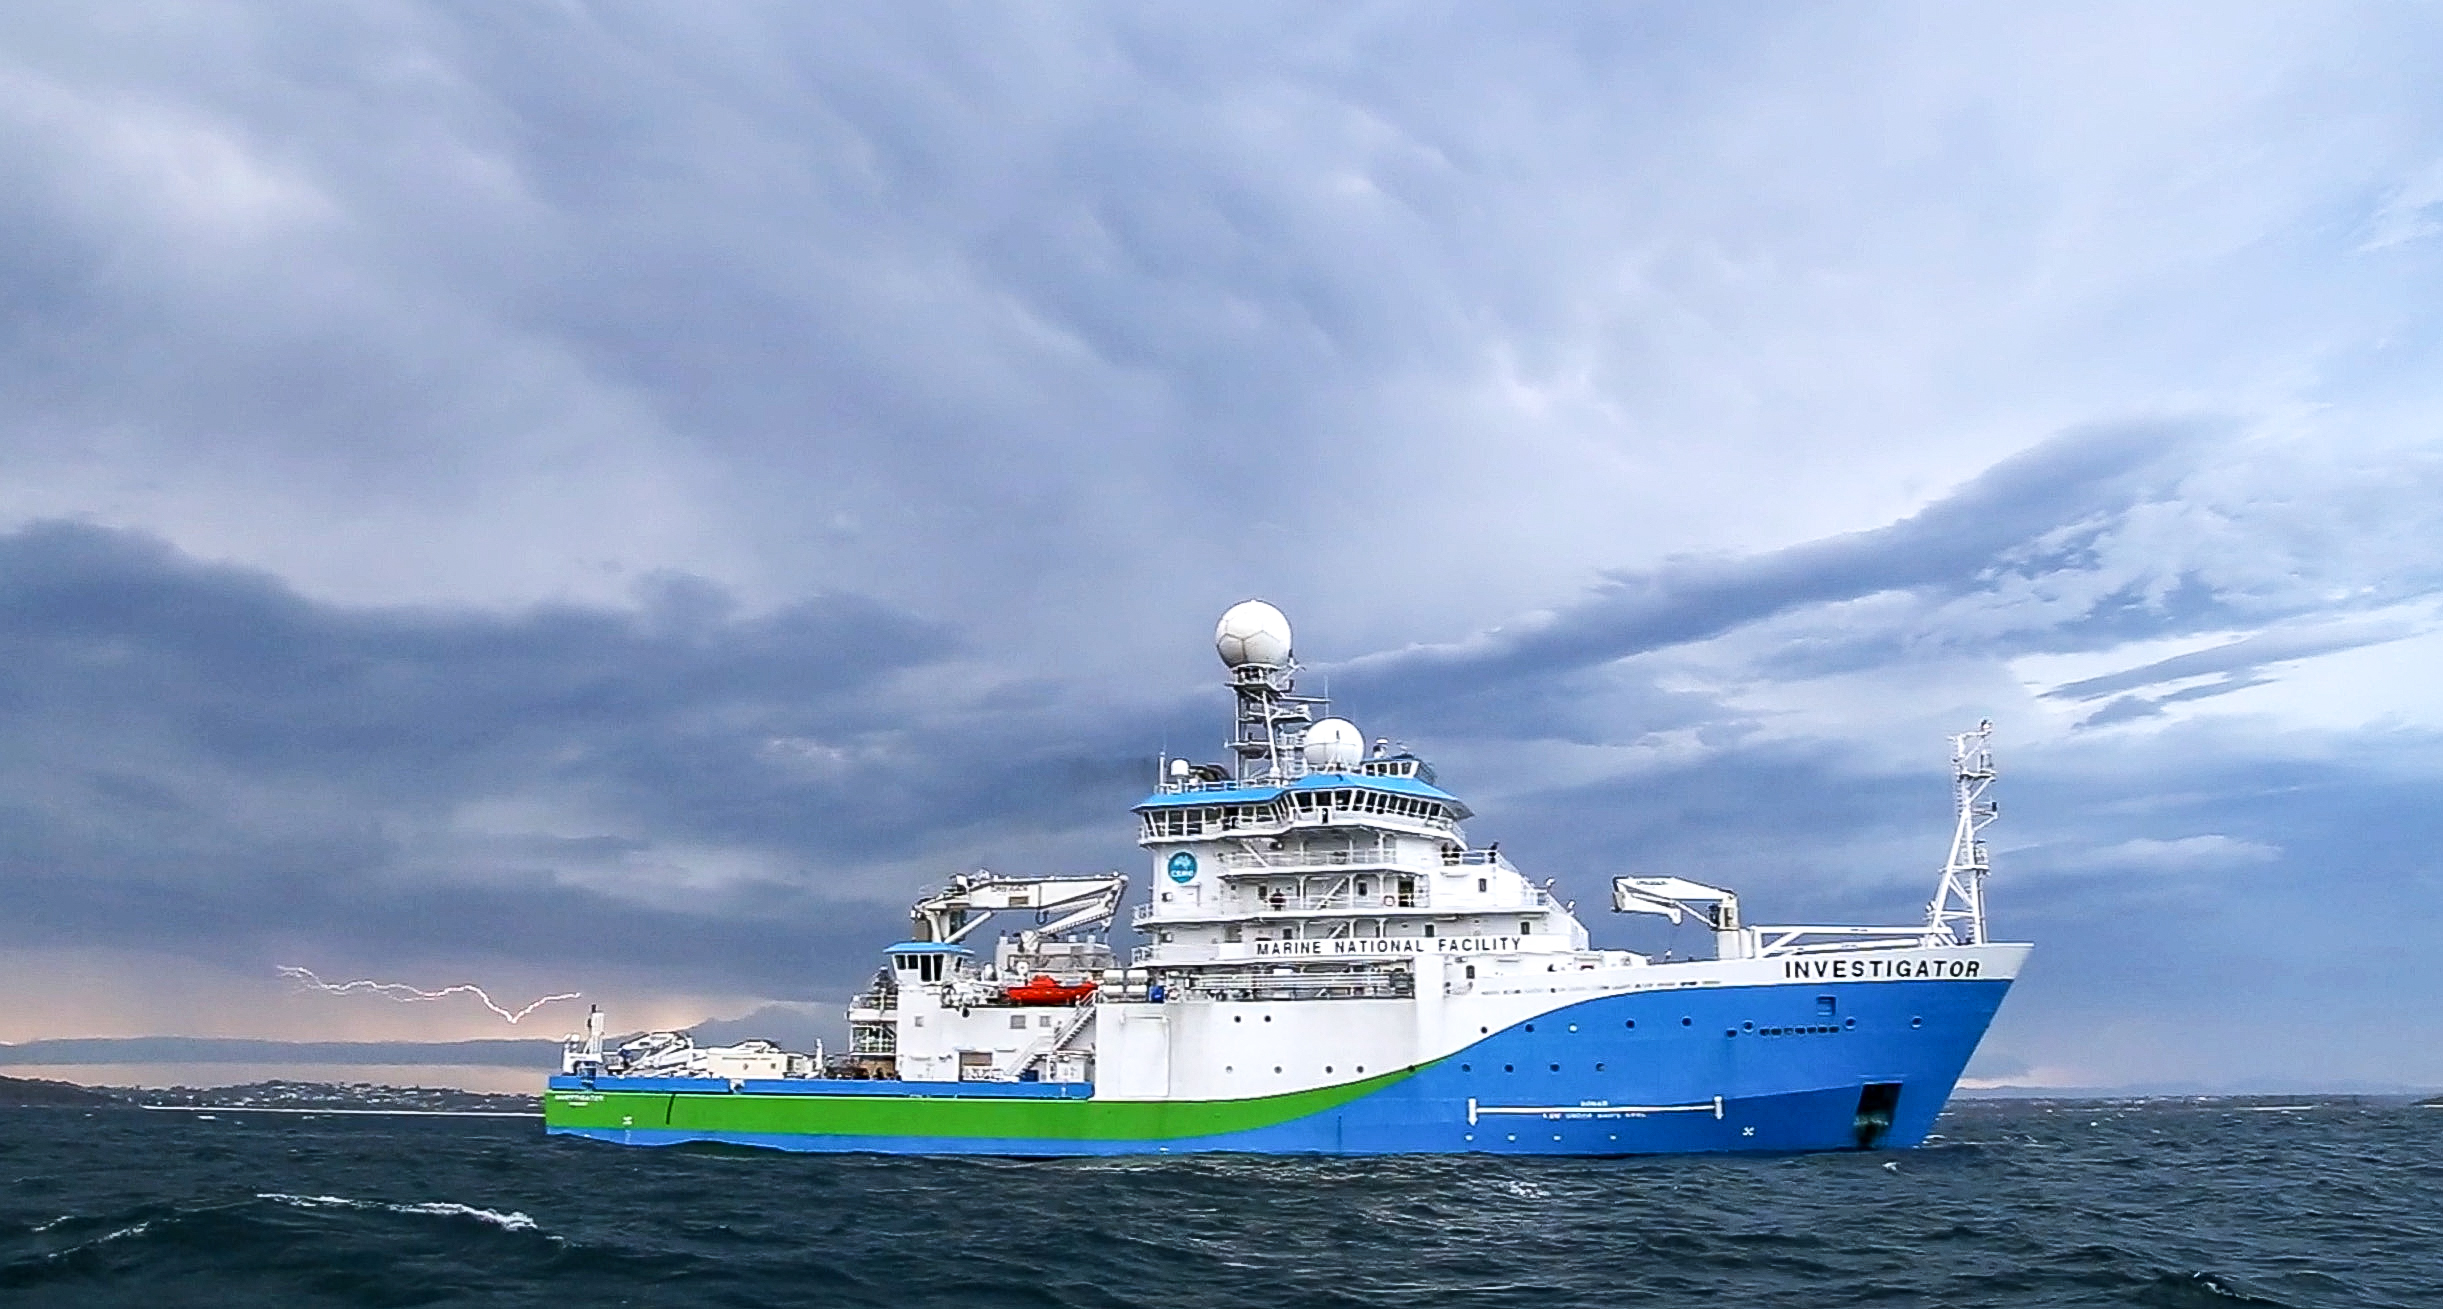 Ship with Green and blue markings in ocean with lightening bolt in background